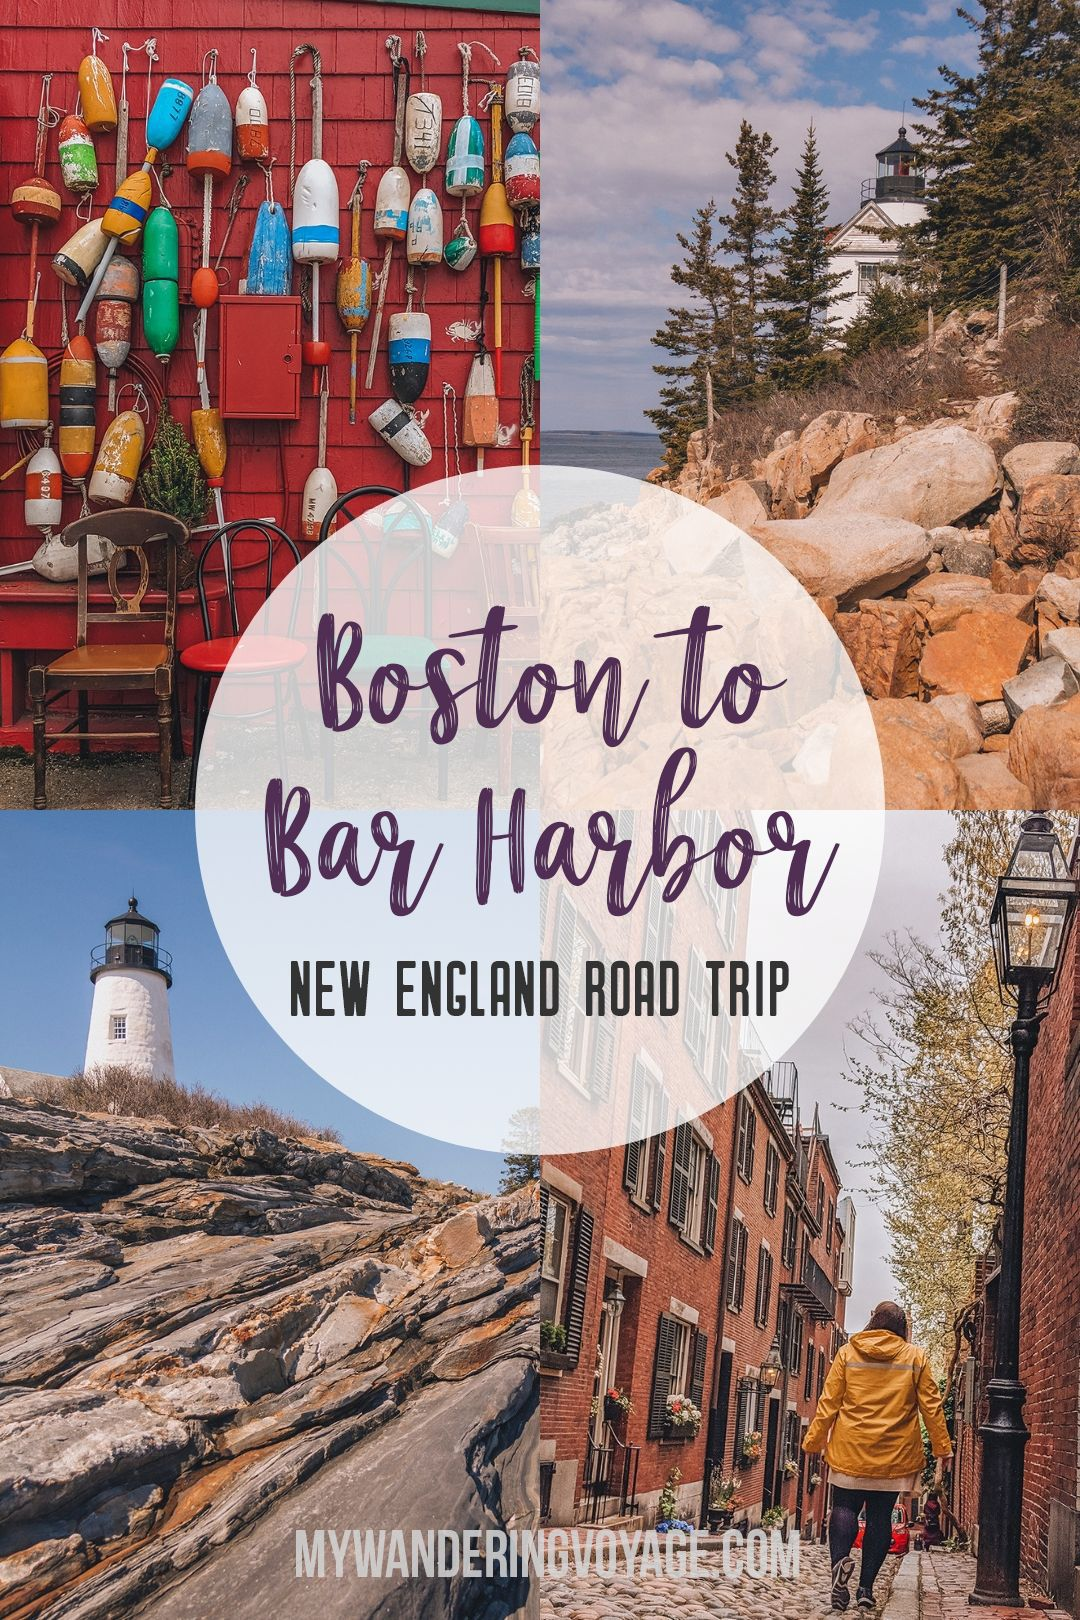 From Boston to Bar Harbor: a New England road trip